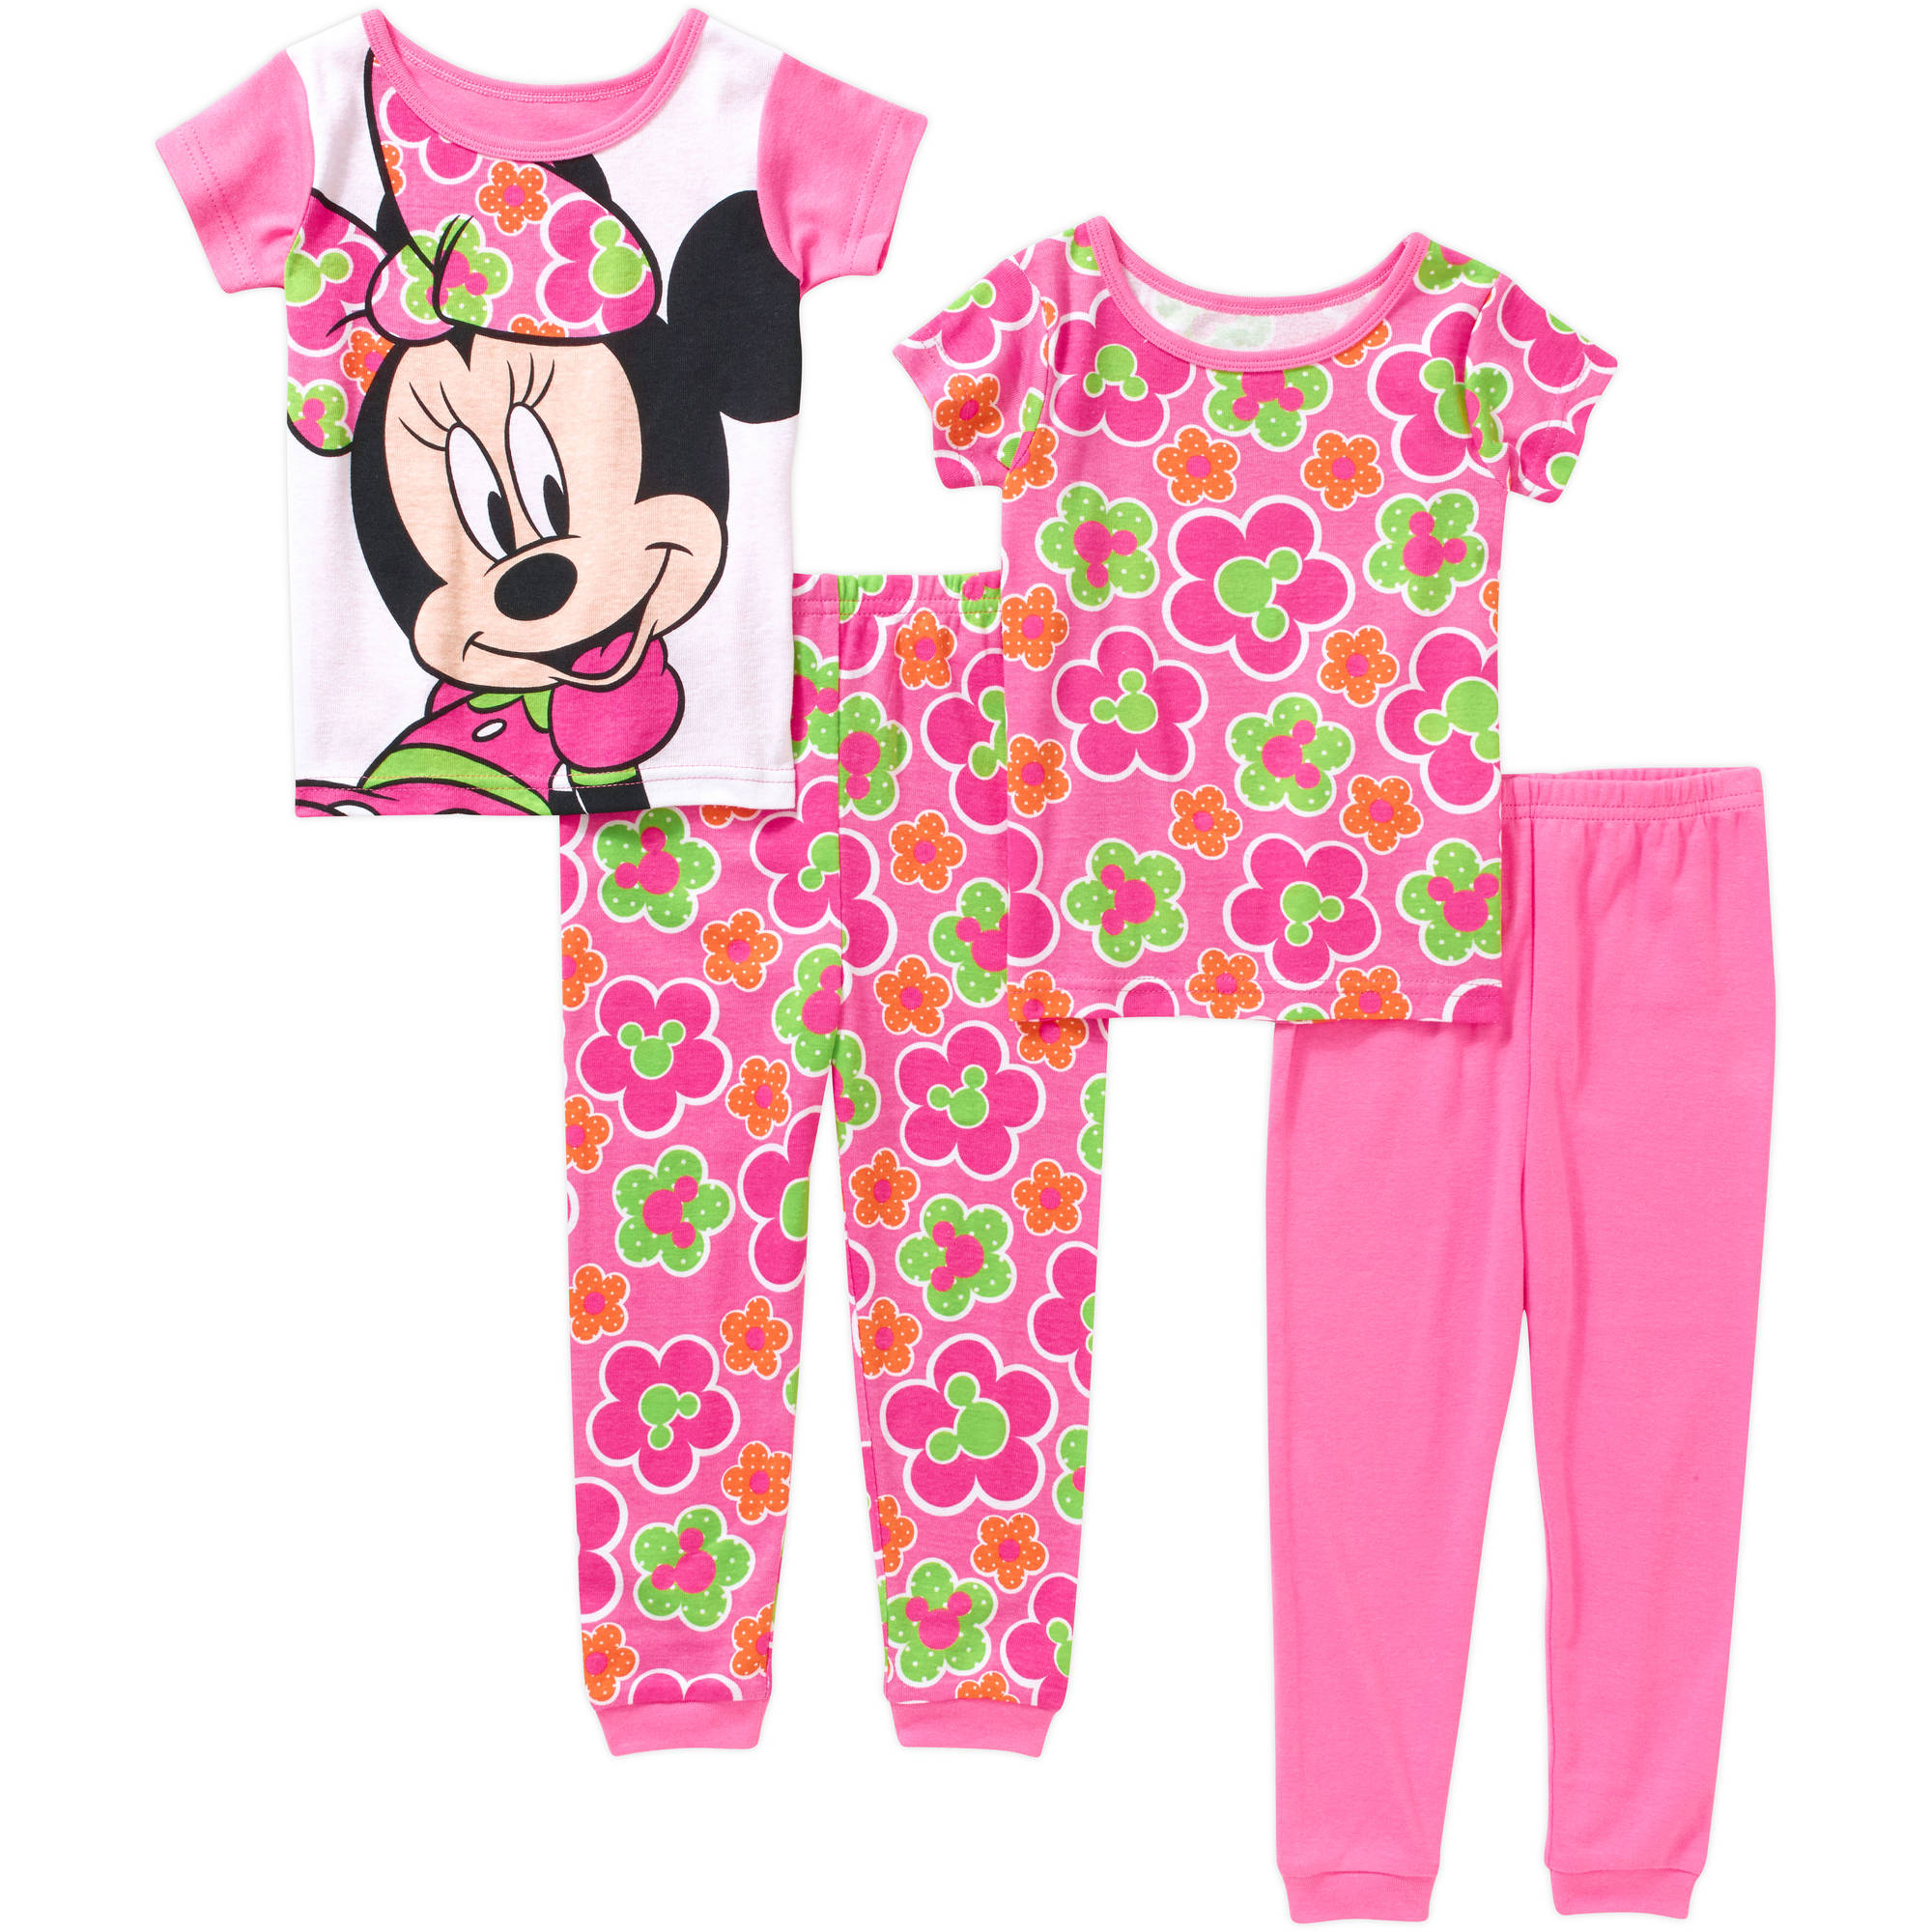 Minnie Mouse Toddler Girl Cotton Tight Fit Short Sleeve Pajama Set, 4-Pieces